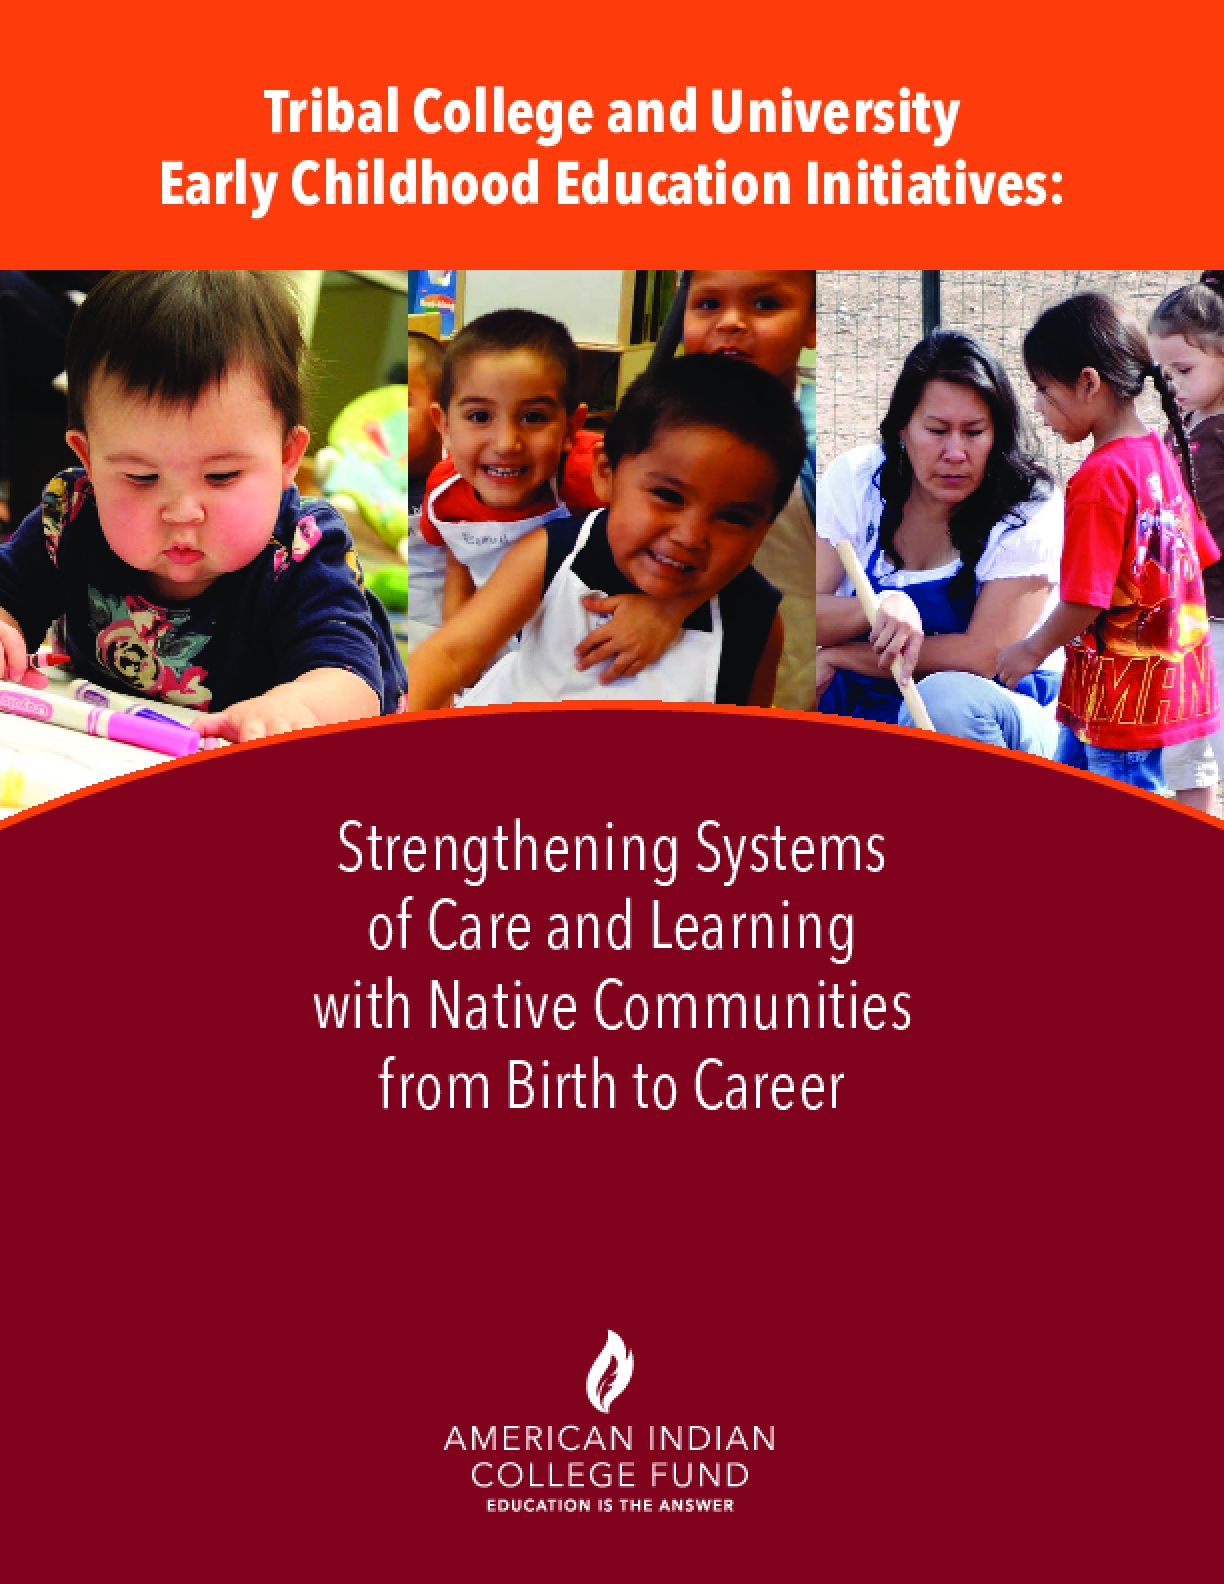 Tribal College and University Early Childhood Education Initiatives: Strengthening Systems of Care and Learning with Native Communities from Birth to Career